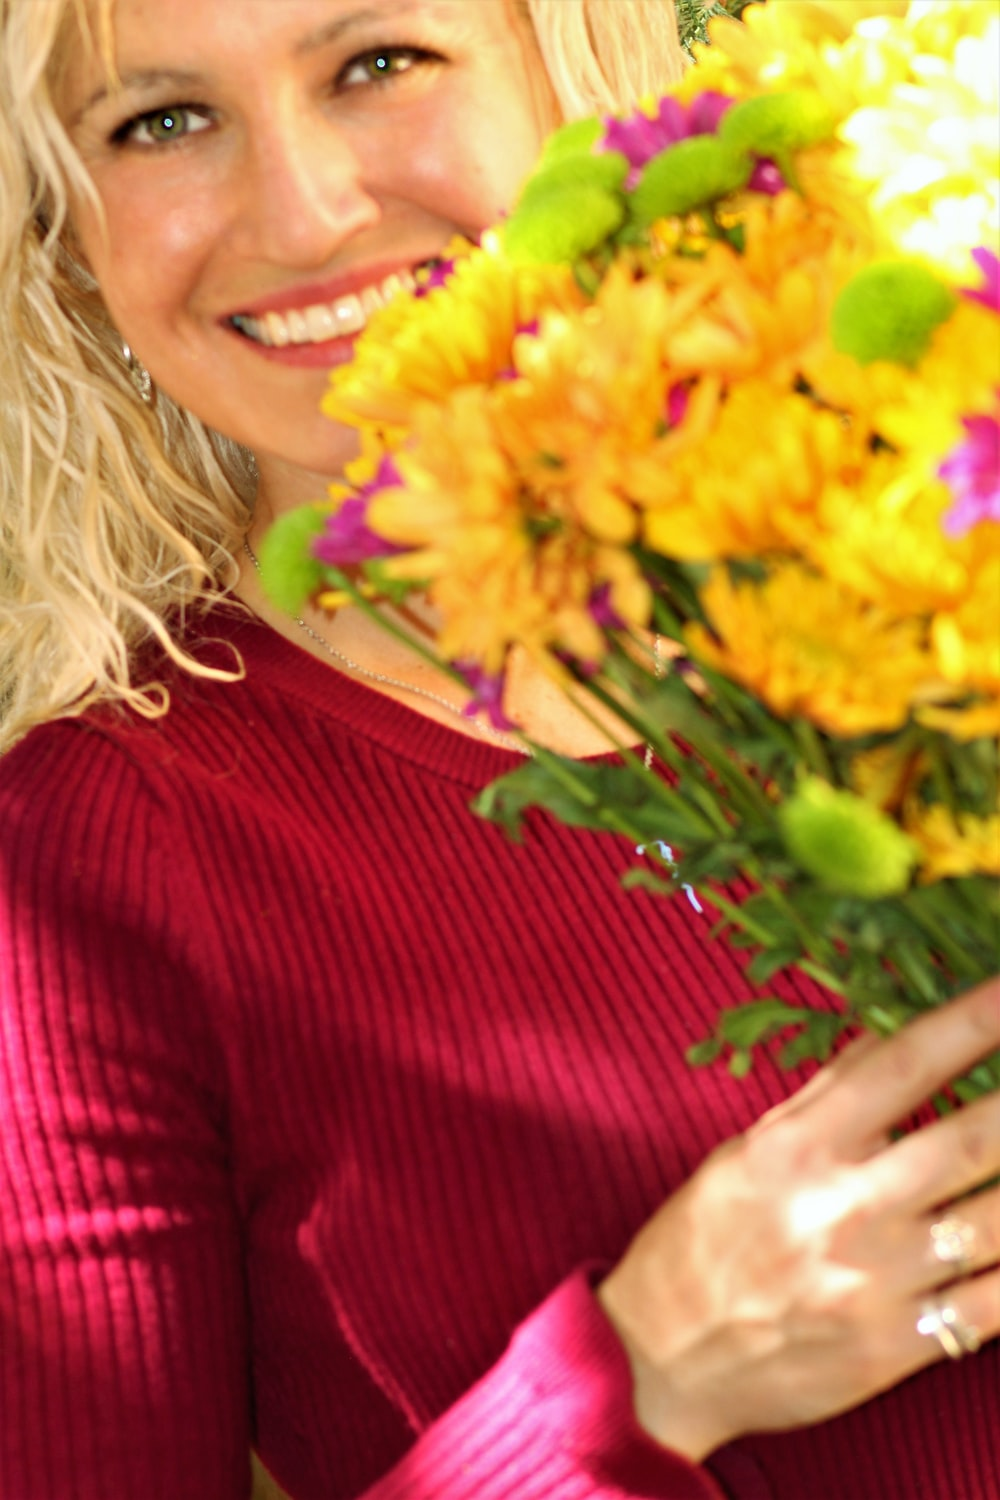 woman in red sweater holding yellow flowers